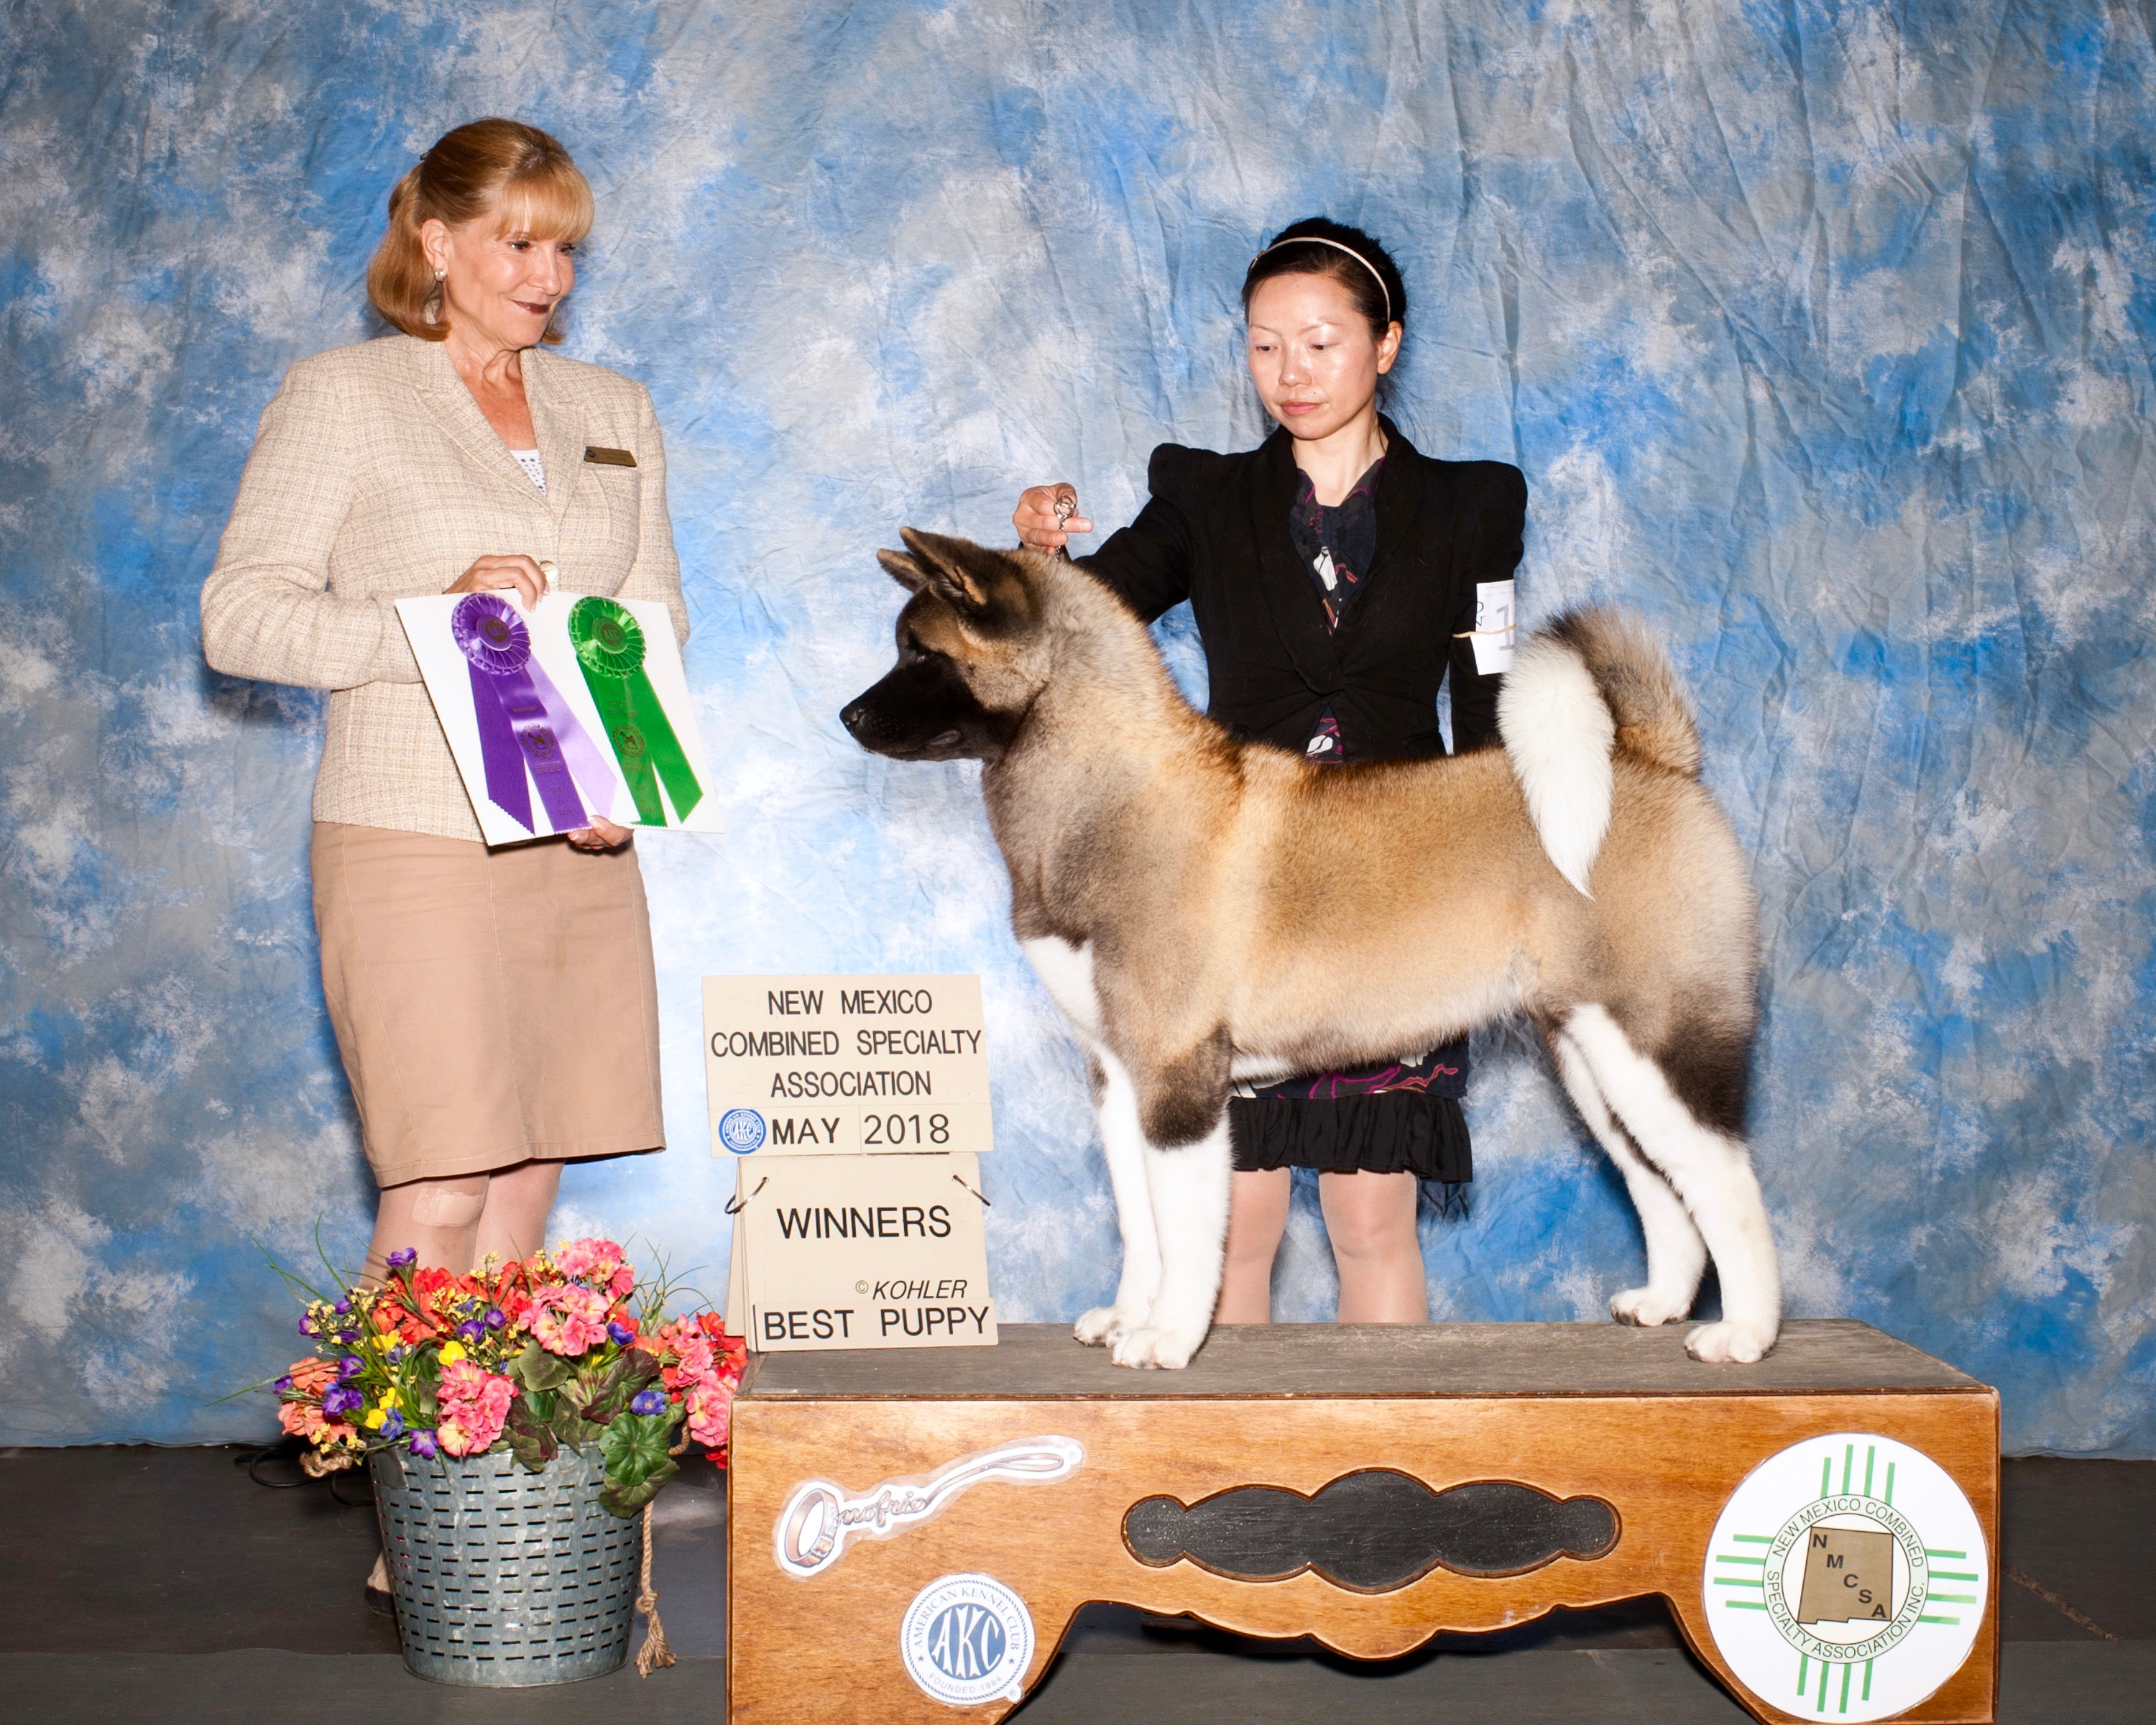 WB & Best Puppy @ Regional Specialty